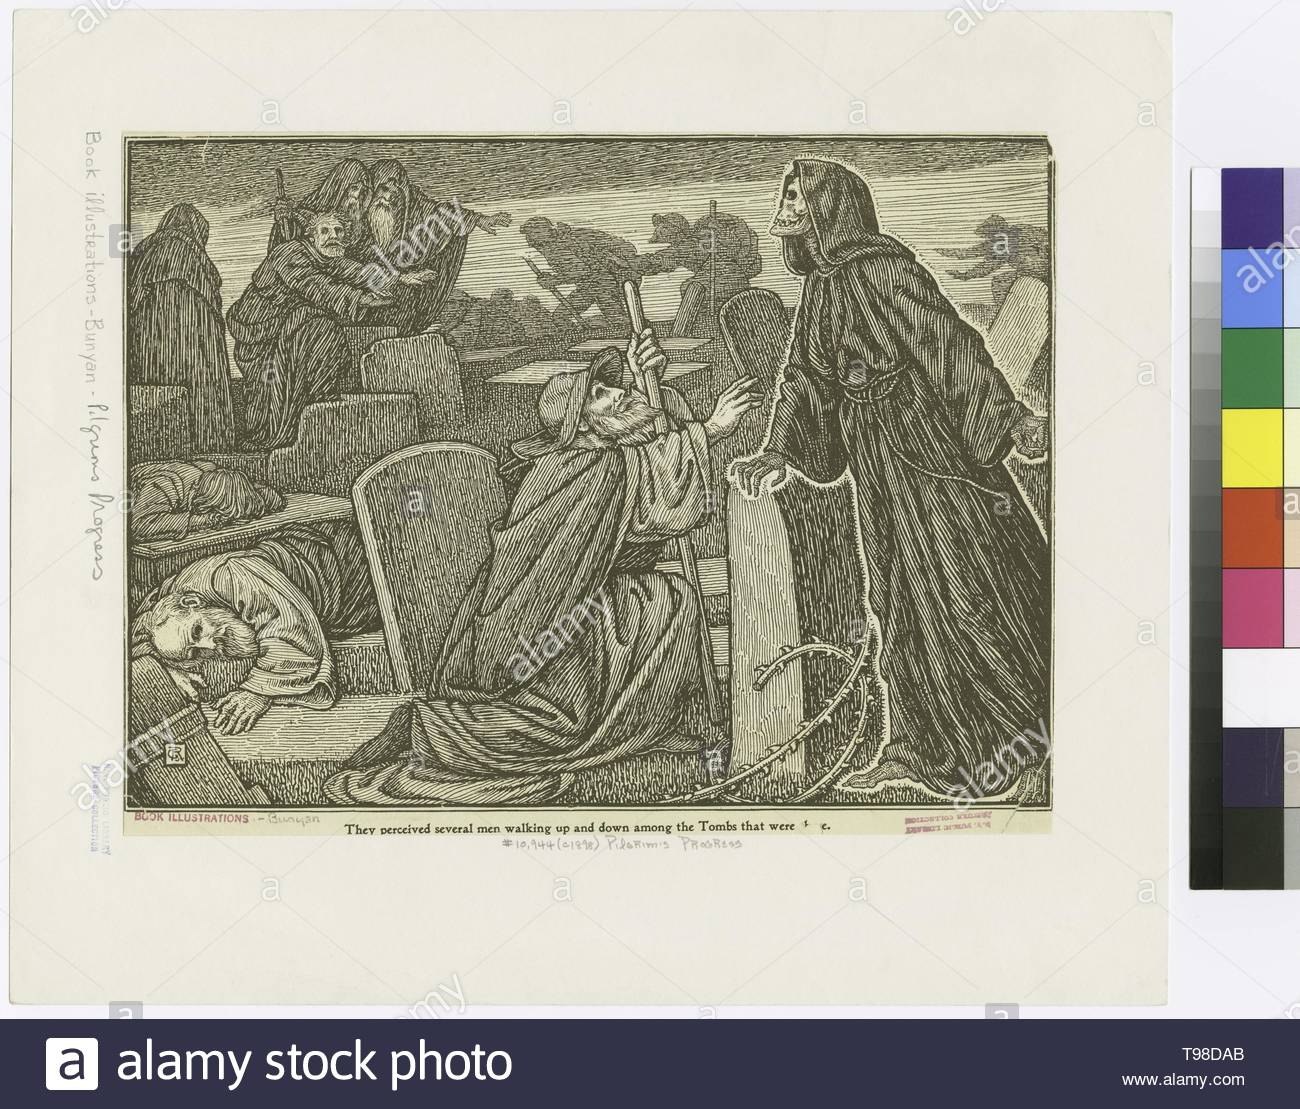 Anonymous-They perceived several men walking up and down among the tombs that were there - Stock Image